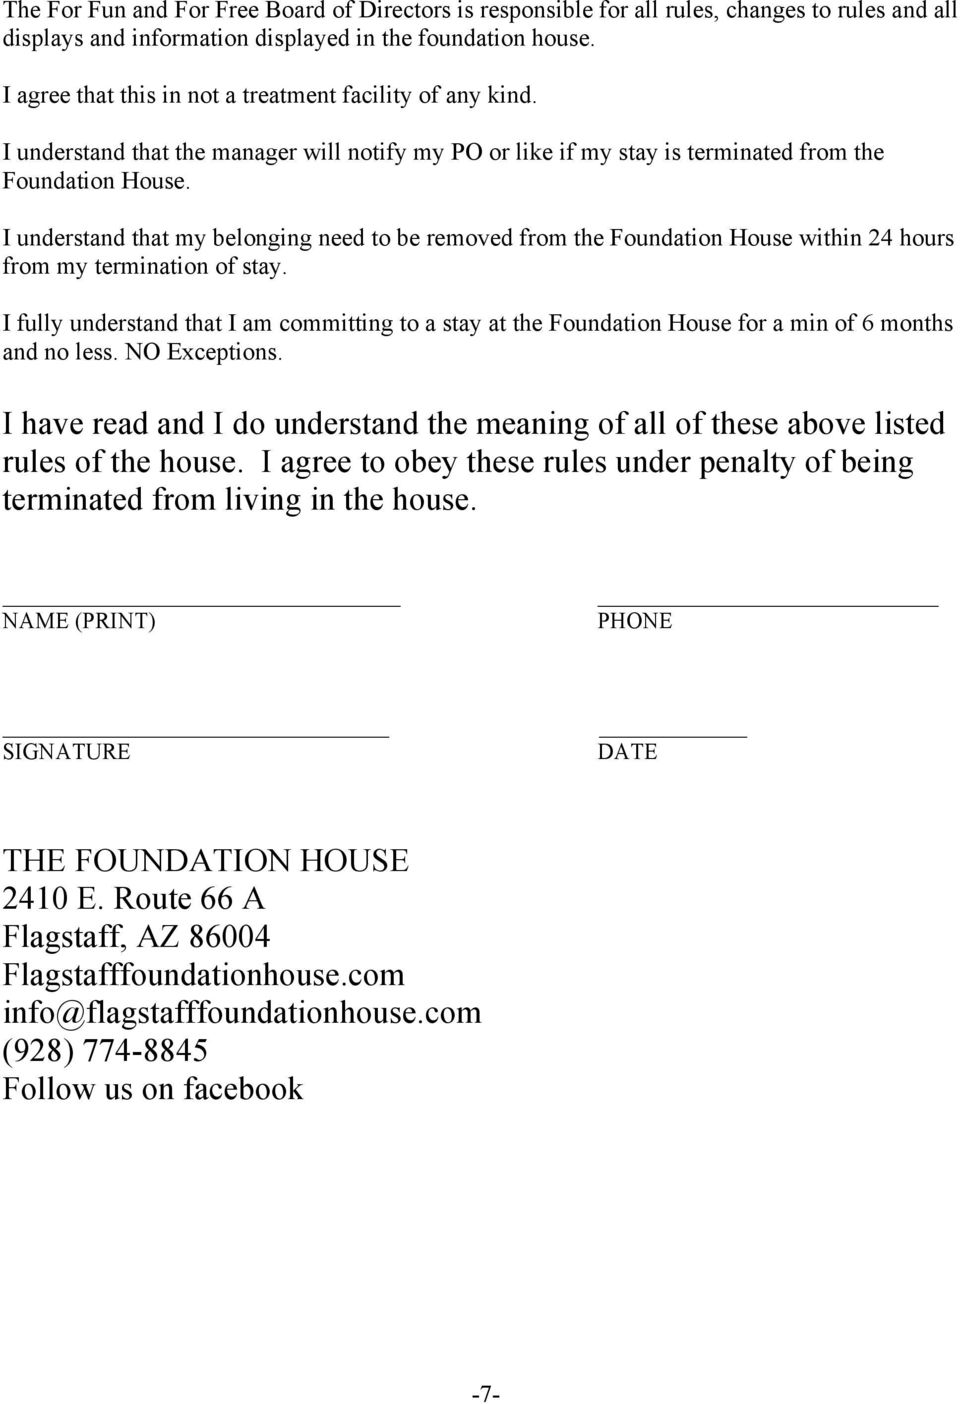 I understand that my belonging need to be removed from the Foundation House within 24 hours from my termination of stay.